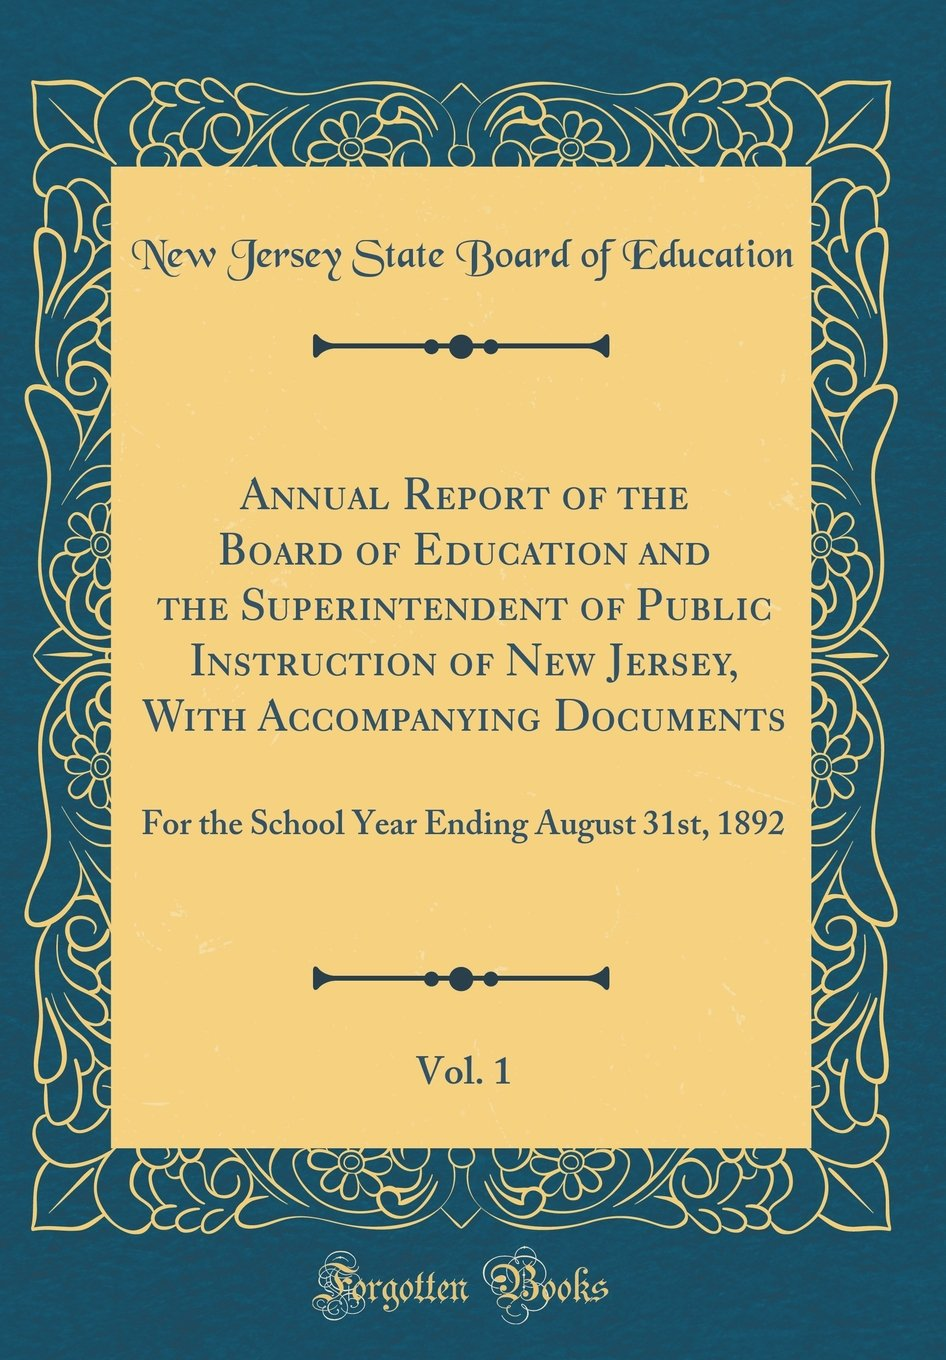 Download Annual Report of the Board of Education and the Superintendent of Public Instruction of New Jersey, with Accompanying Documents, Vol. 1: For the School Year Ending August 31st, 1892 (Classic Reprint) ebook